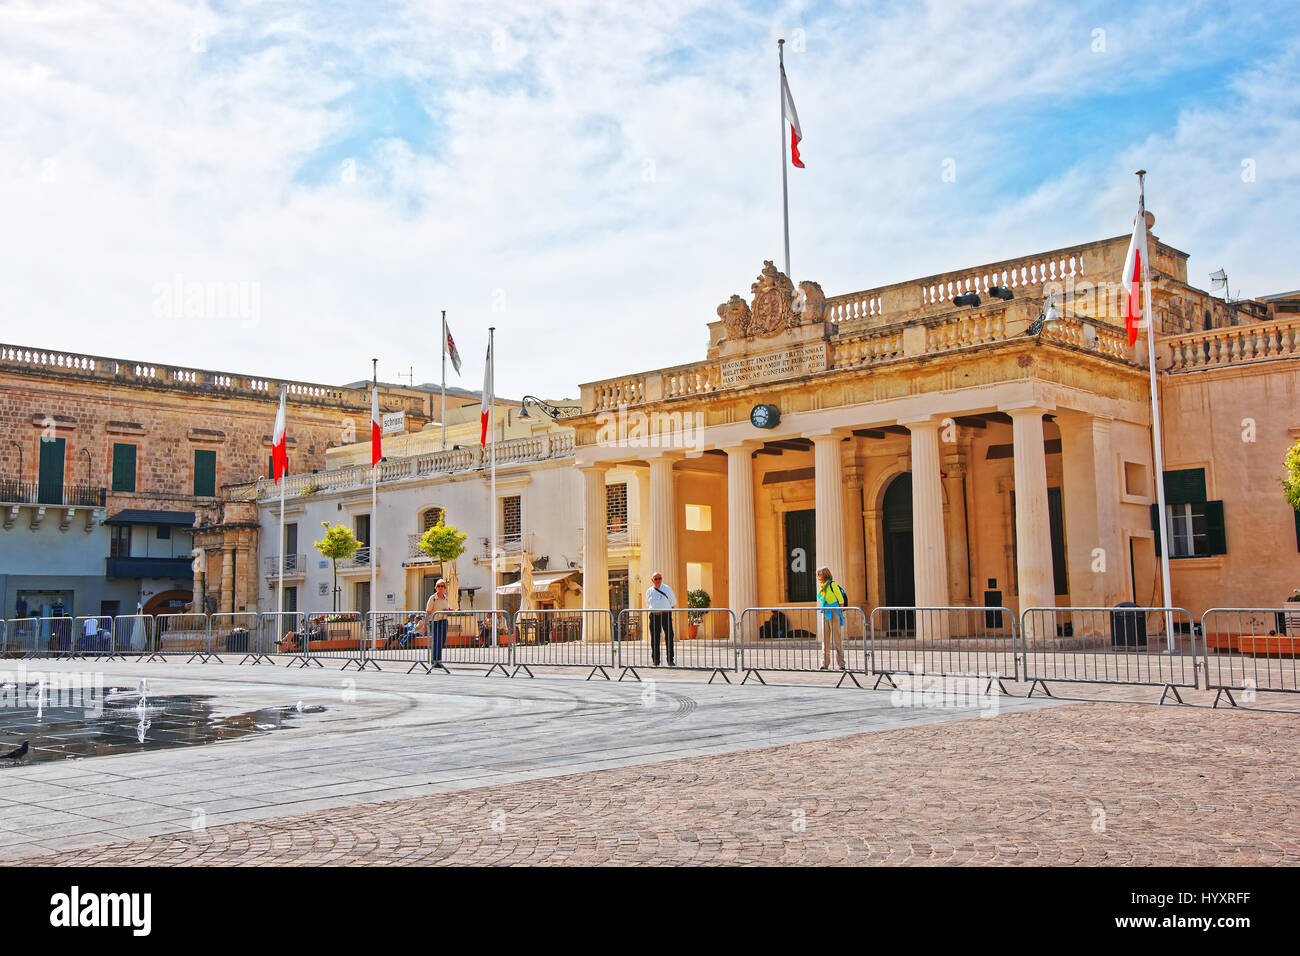 Valletta, Malta - April 3, 2014: People at Guardhouse on St George Square in Valletta old town, Malta - Stock Image